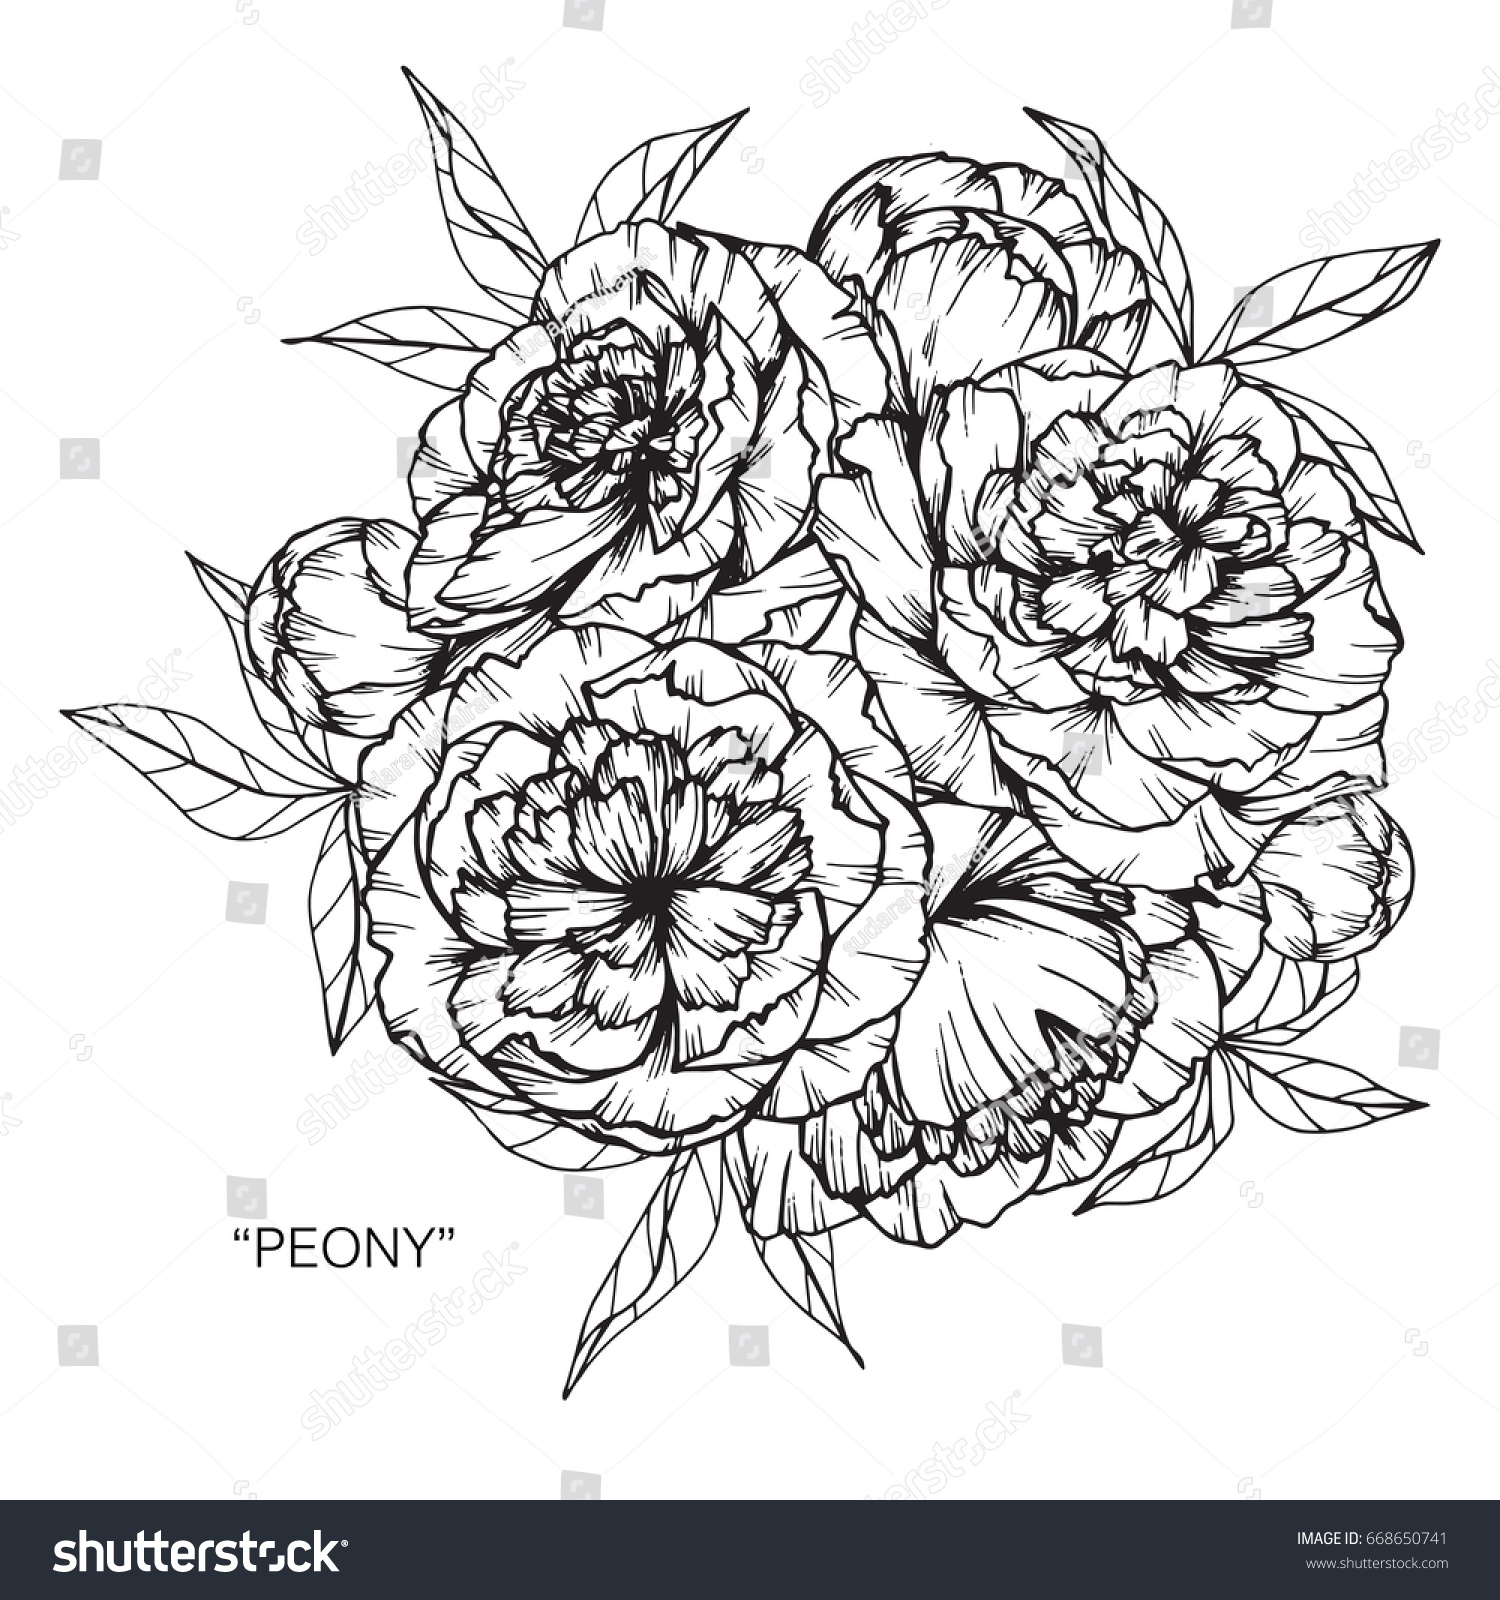 Bouquet of peony flowers drawing and sketch with line art on white id 668650741 izmirmasajfo